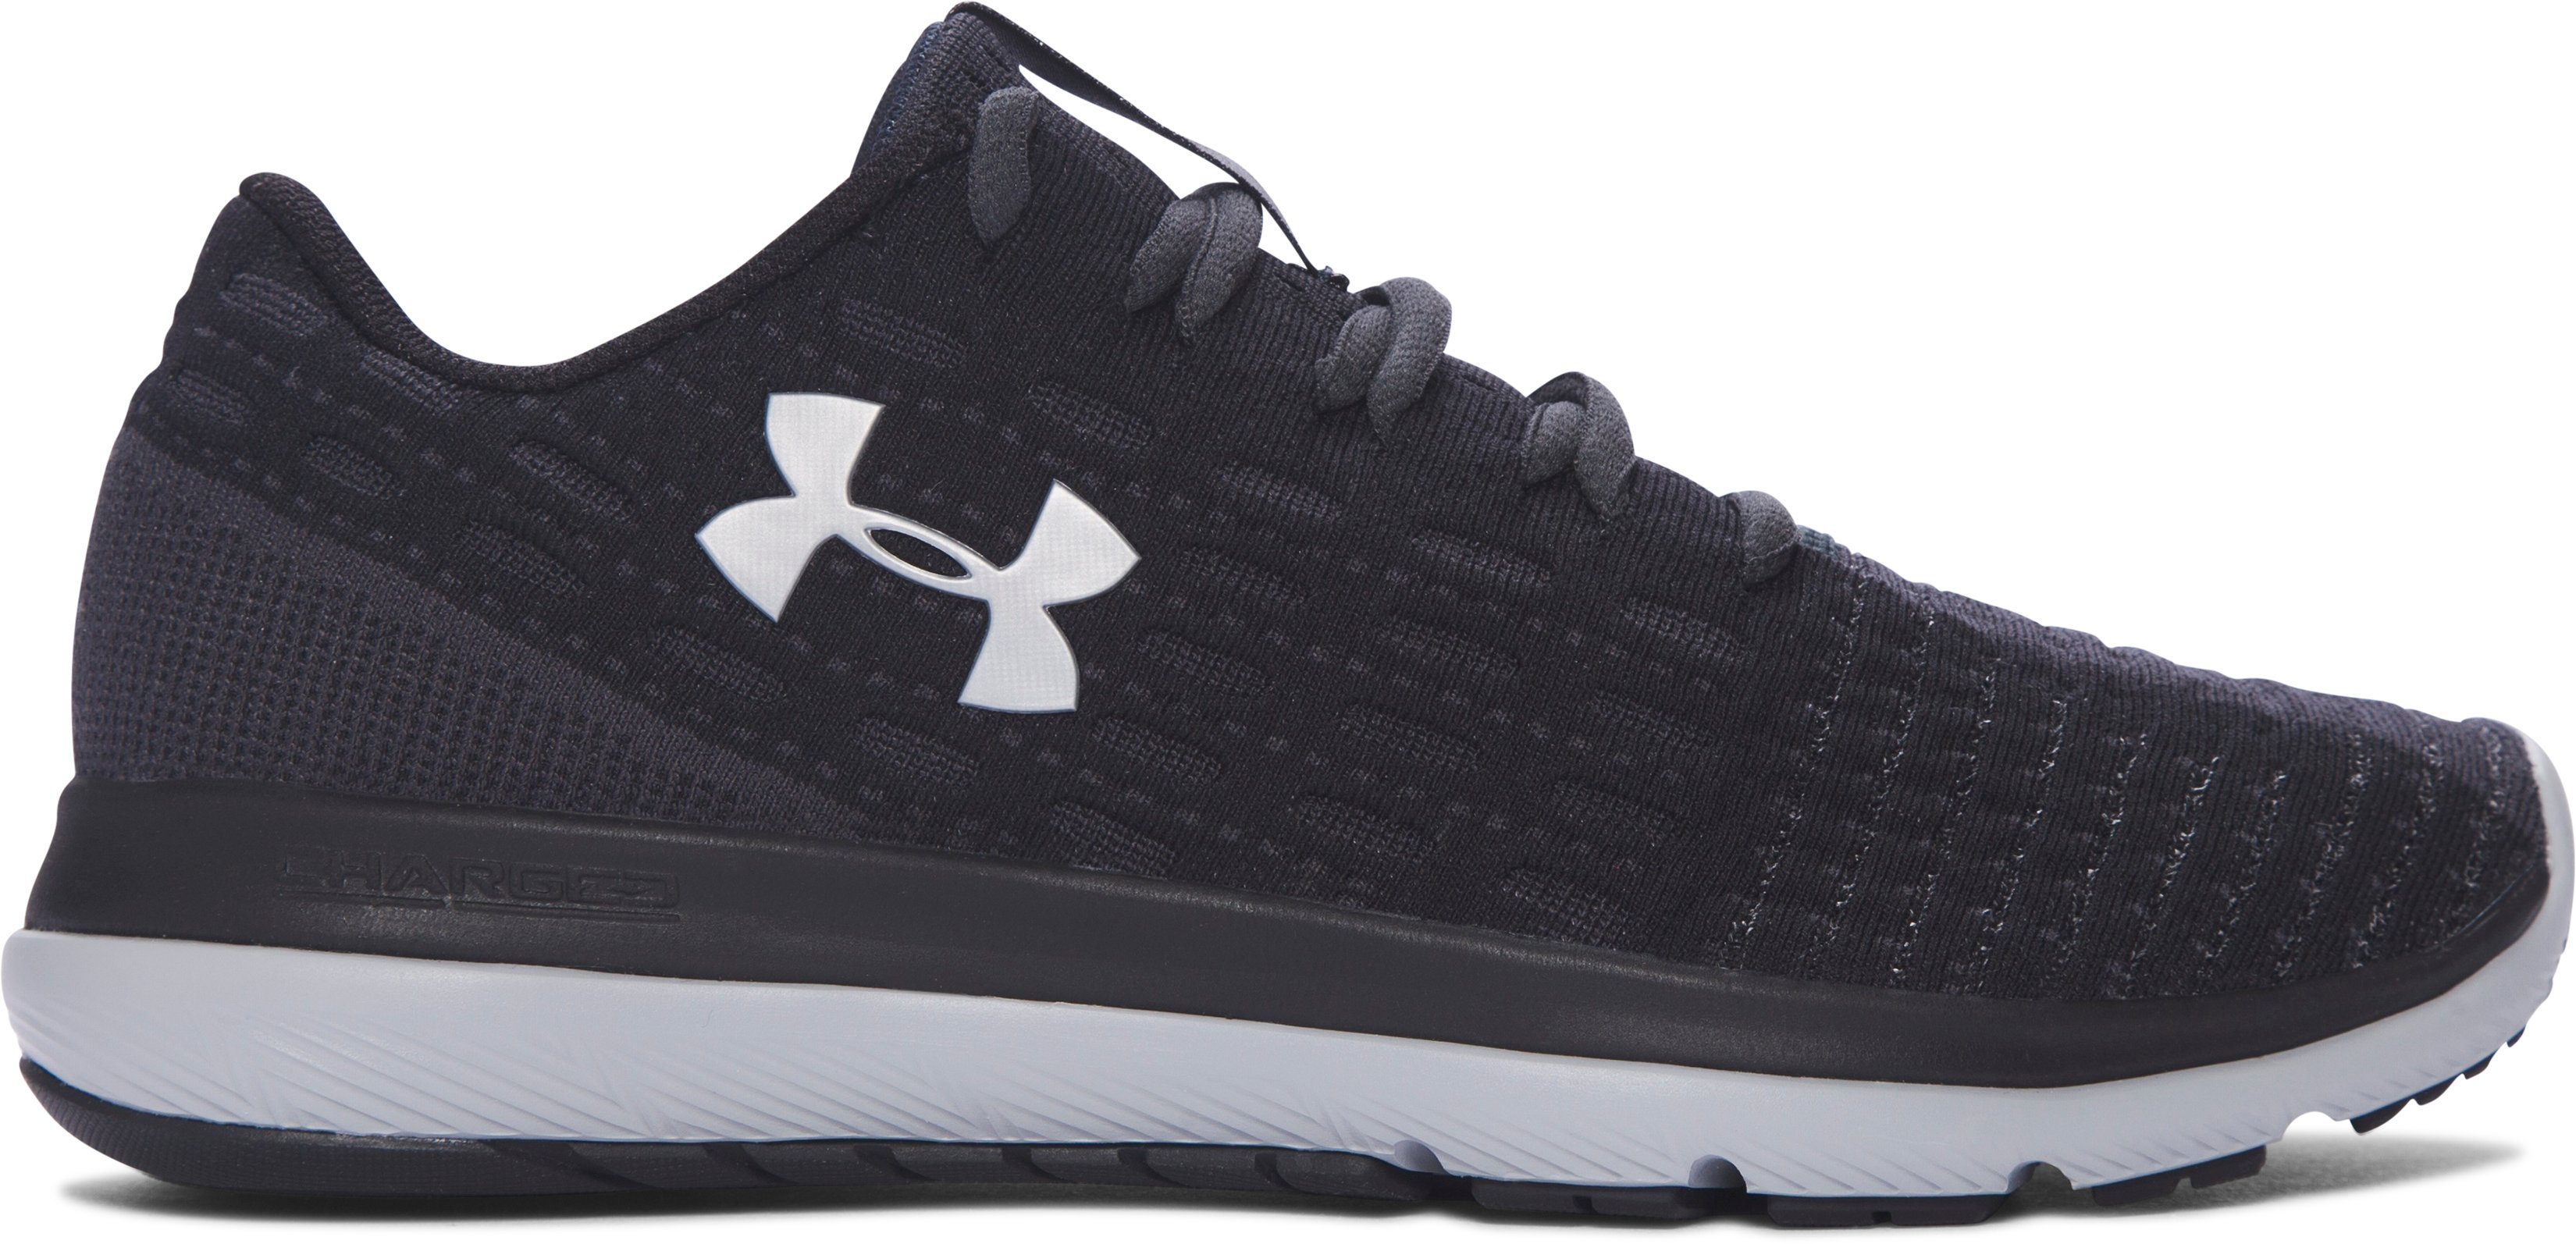 Women's UA Threadborne Slingflex Shoes, Black